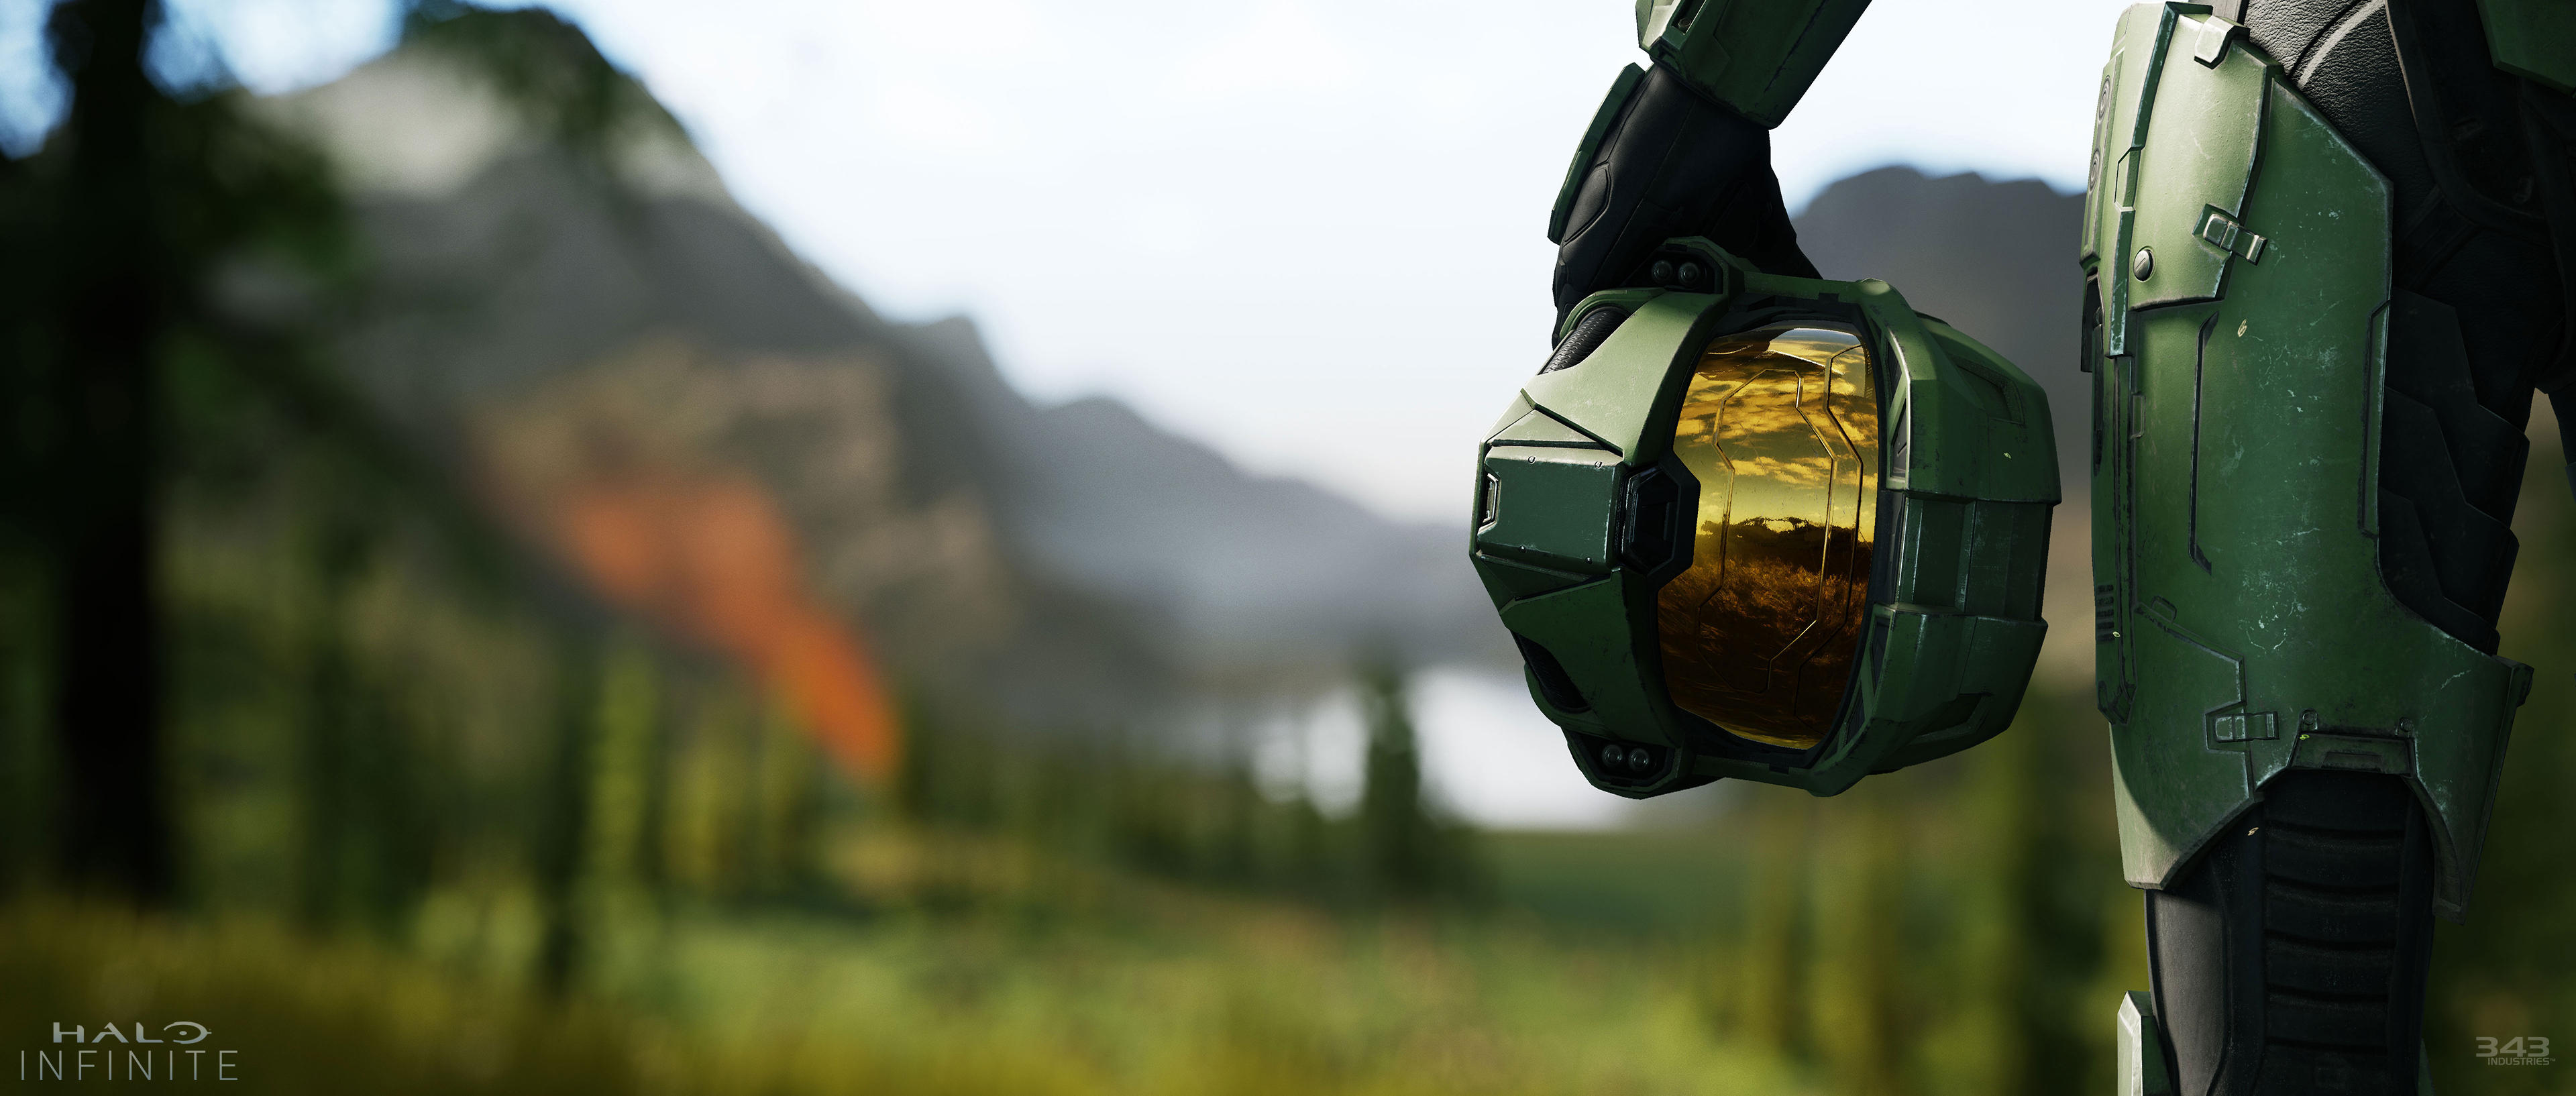 3840_haloinfinite_e318_masterchief_crop-